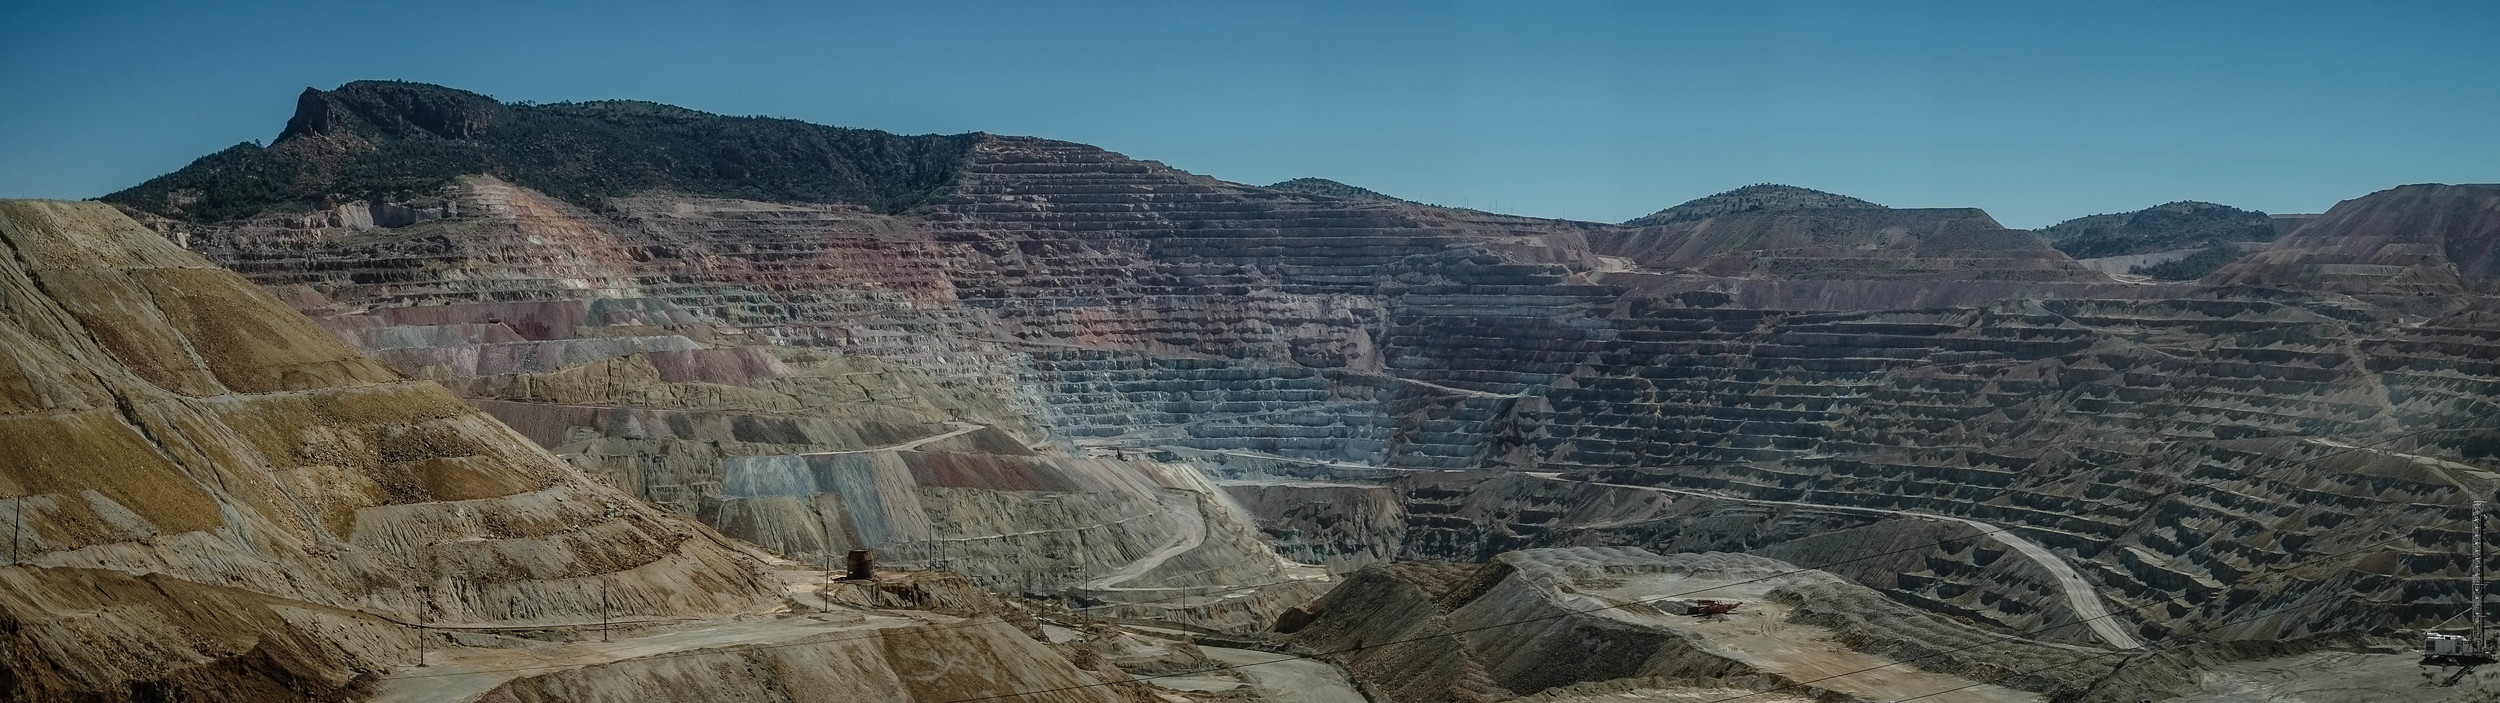 A view of the Chino Mine from N.M. 152 about 12 miles east of Silver City. The open-pit copper mine, among the world's largest, is a mile-and-a-half wide and 1,500 feet deep. (Roberto E. Rosales/Albuquerque Journal)